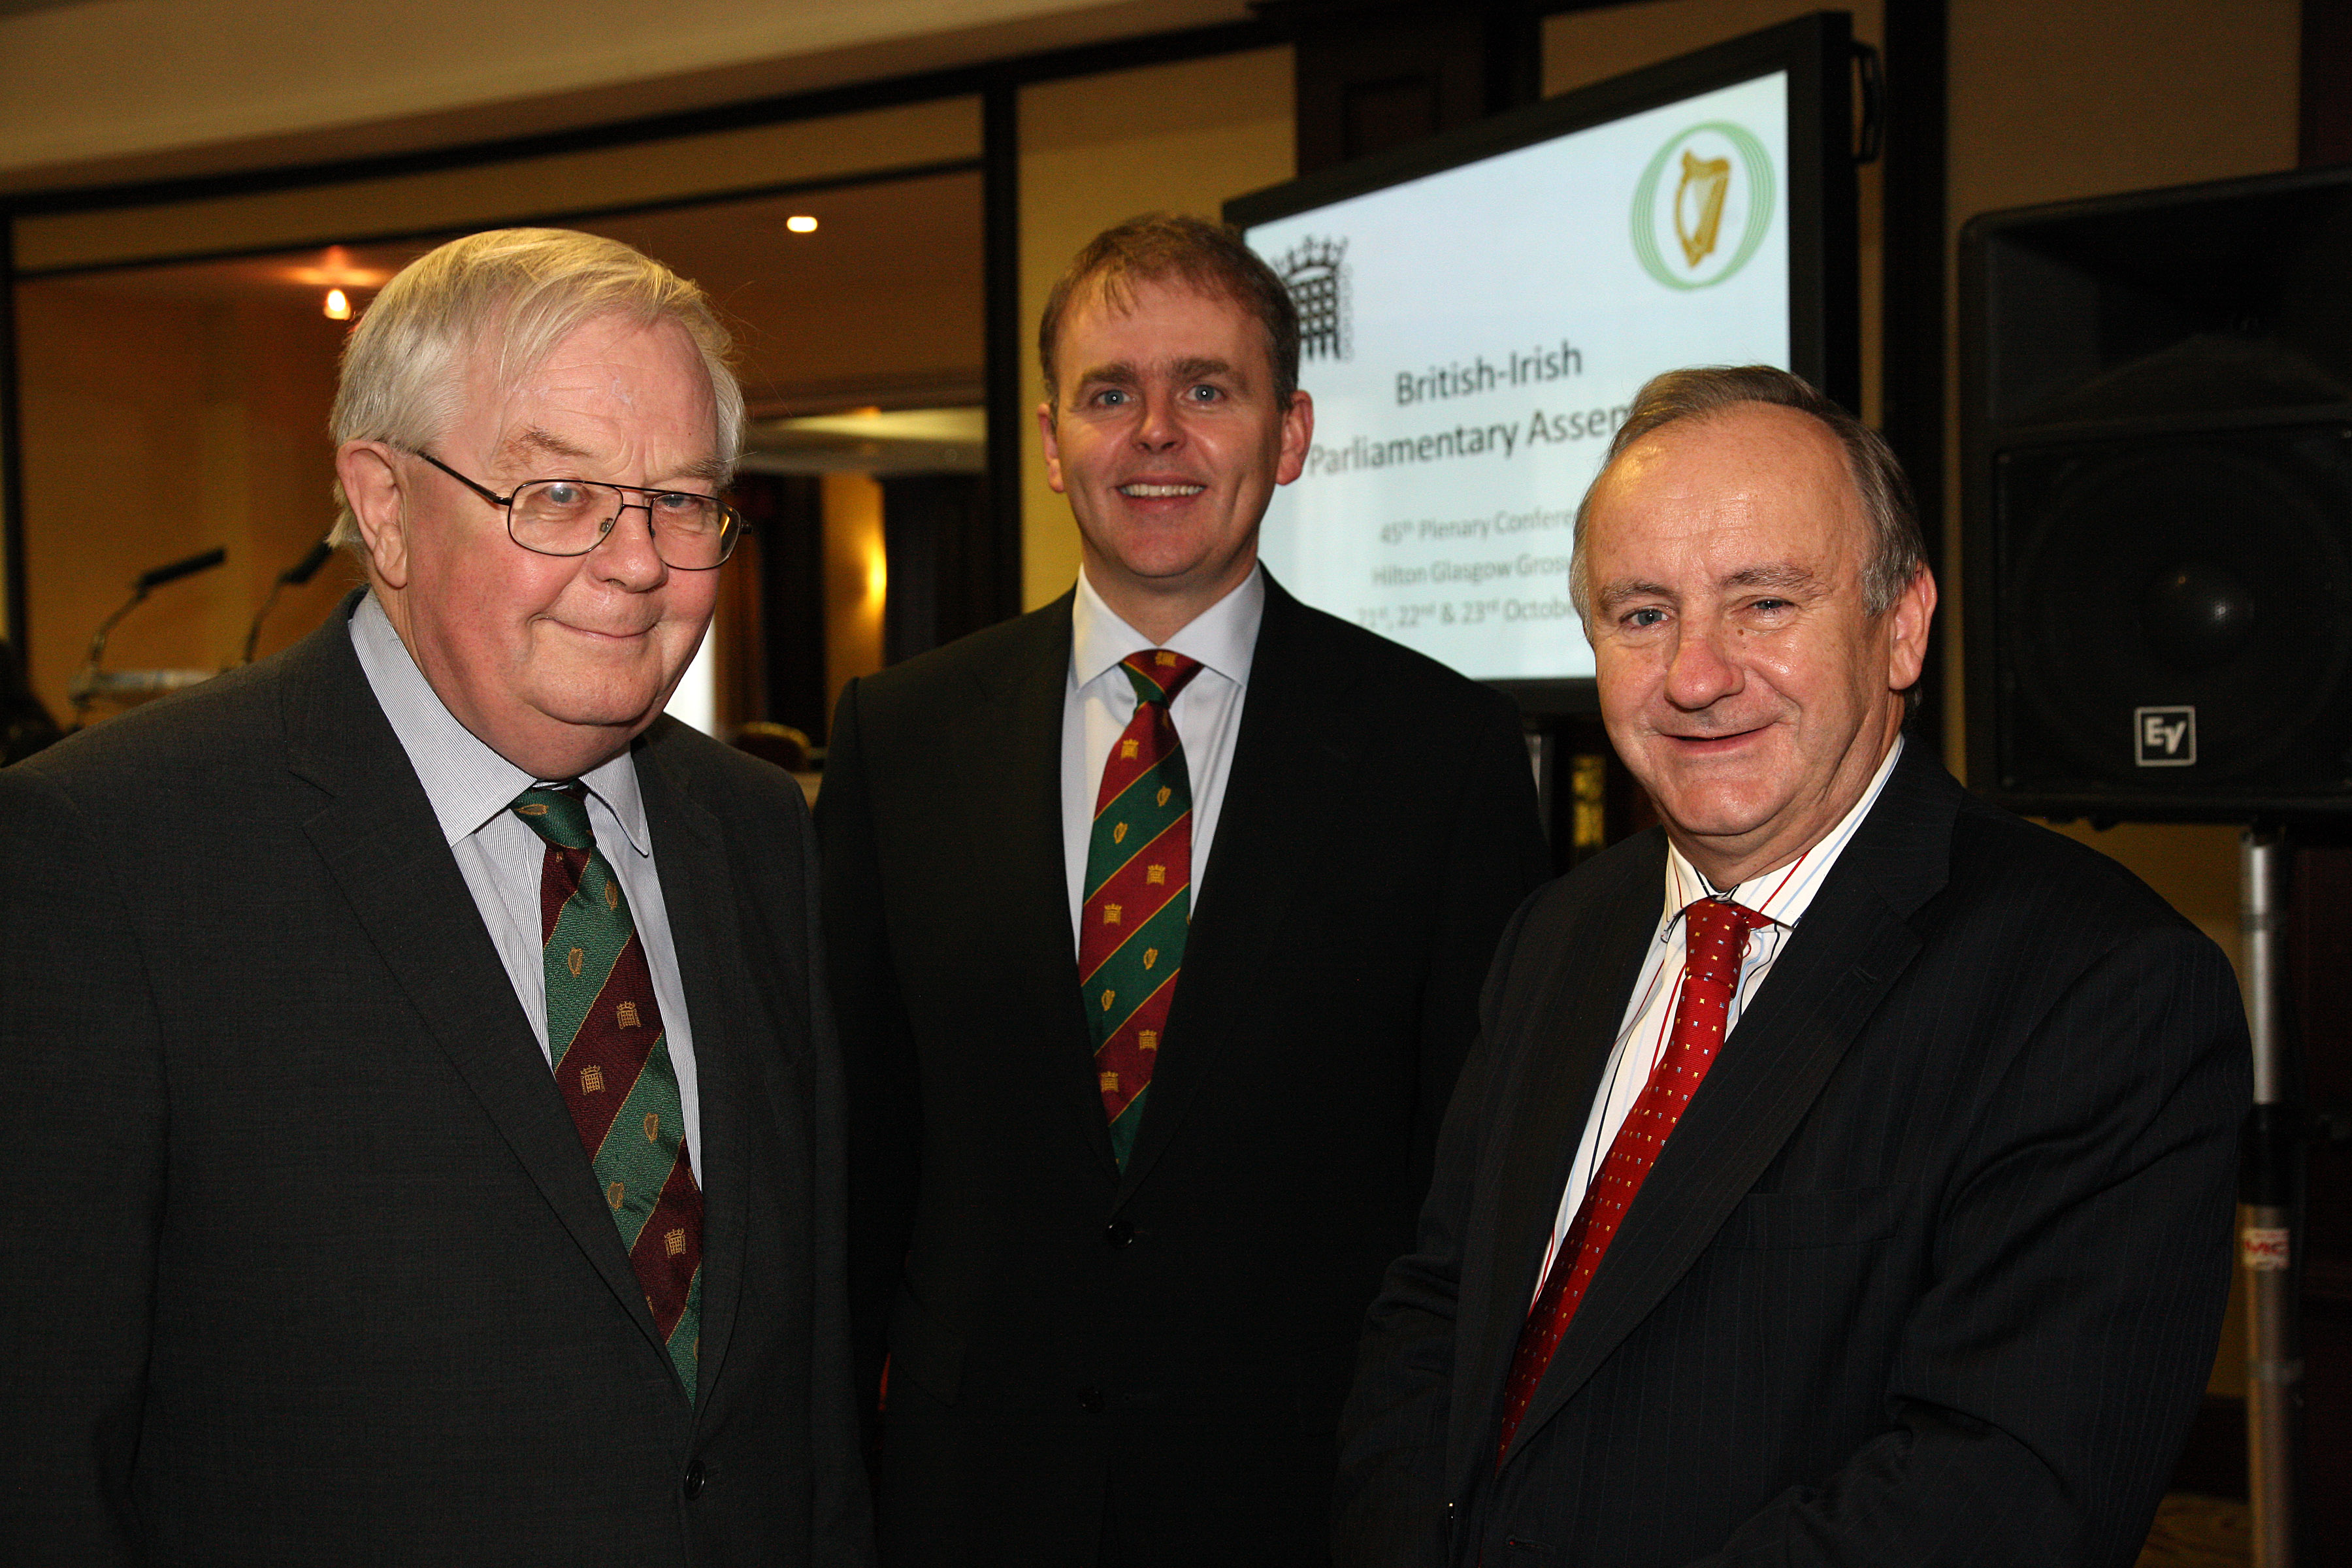 Professor Sir William McKay, Chair of the Commission on the Consequences of Devolution for the House of Commons, with the Co-Chairmen at the 45th plenary in Glasgow